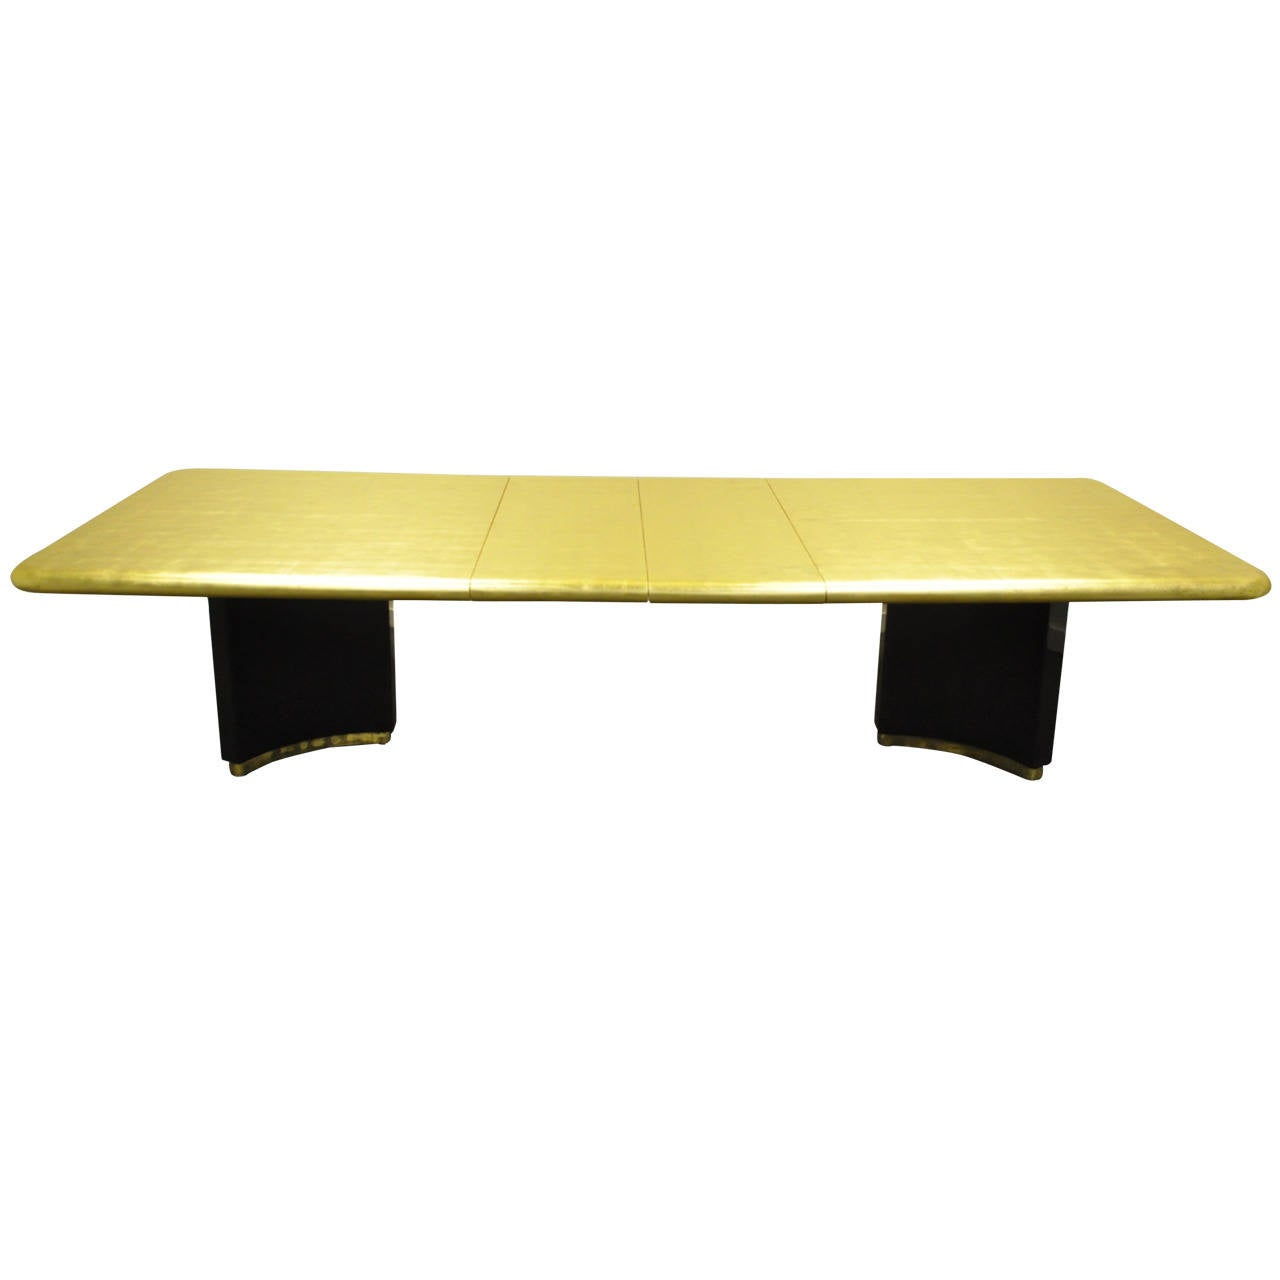 Custom gold leaf art deco style extension dining table for Extension maison